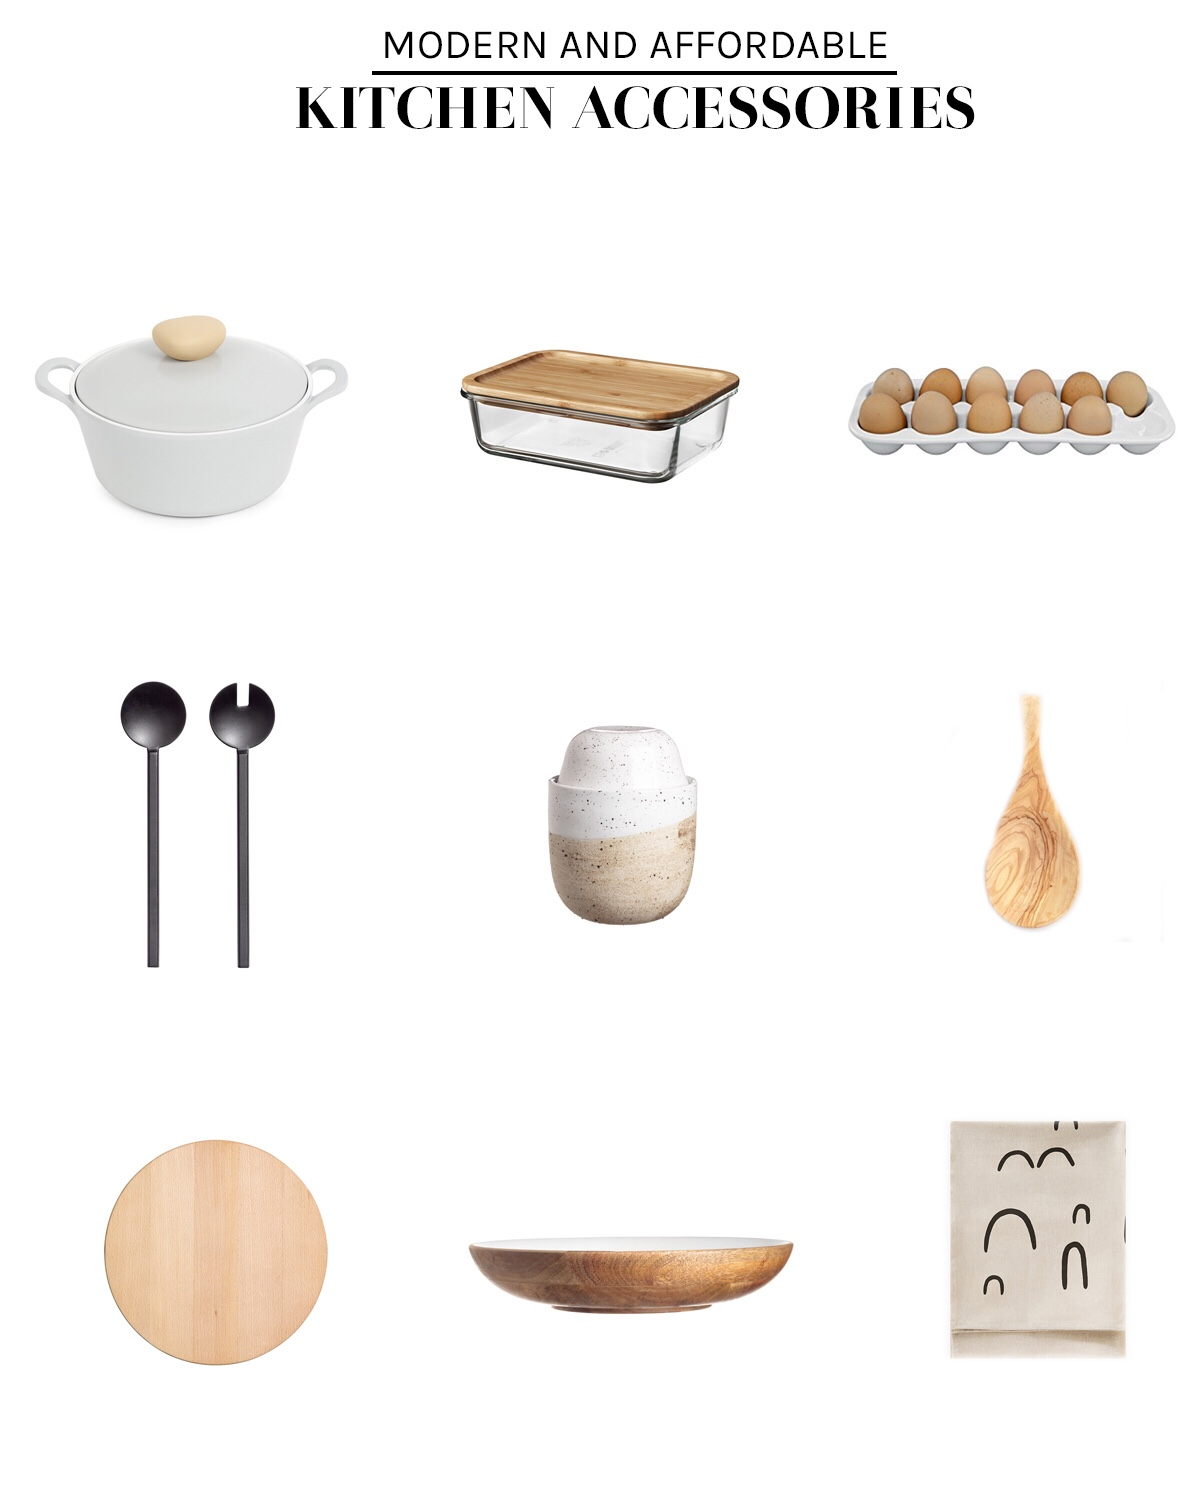 Affordable modern kitchen accessories - The Rucksack Refinery